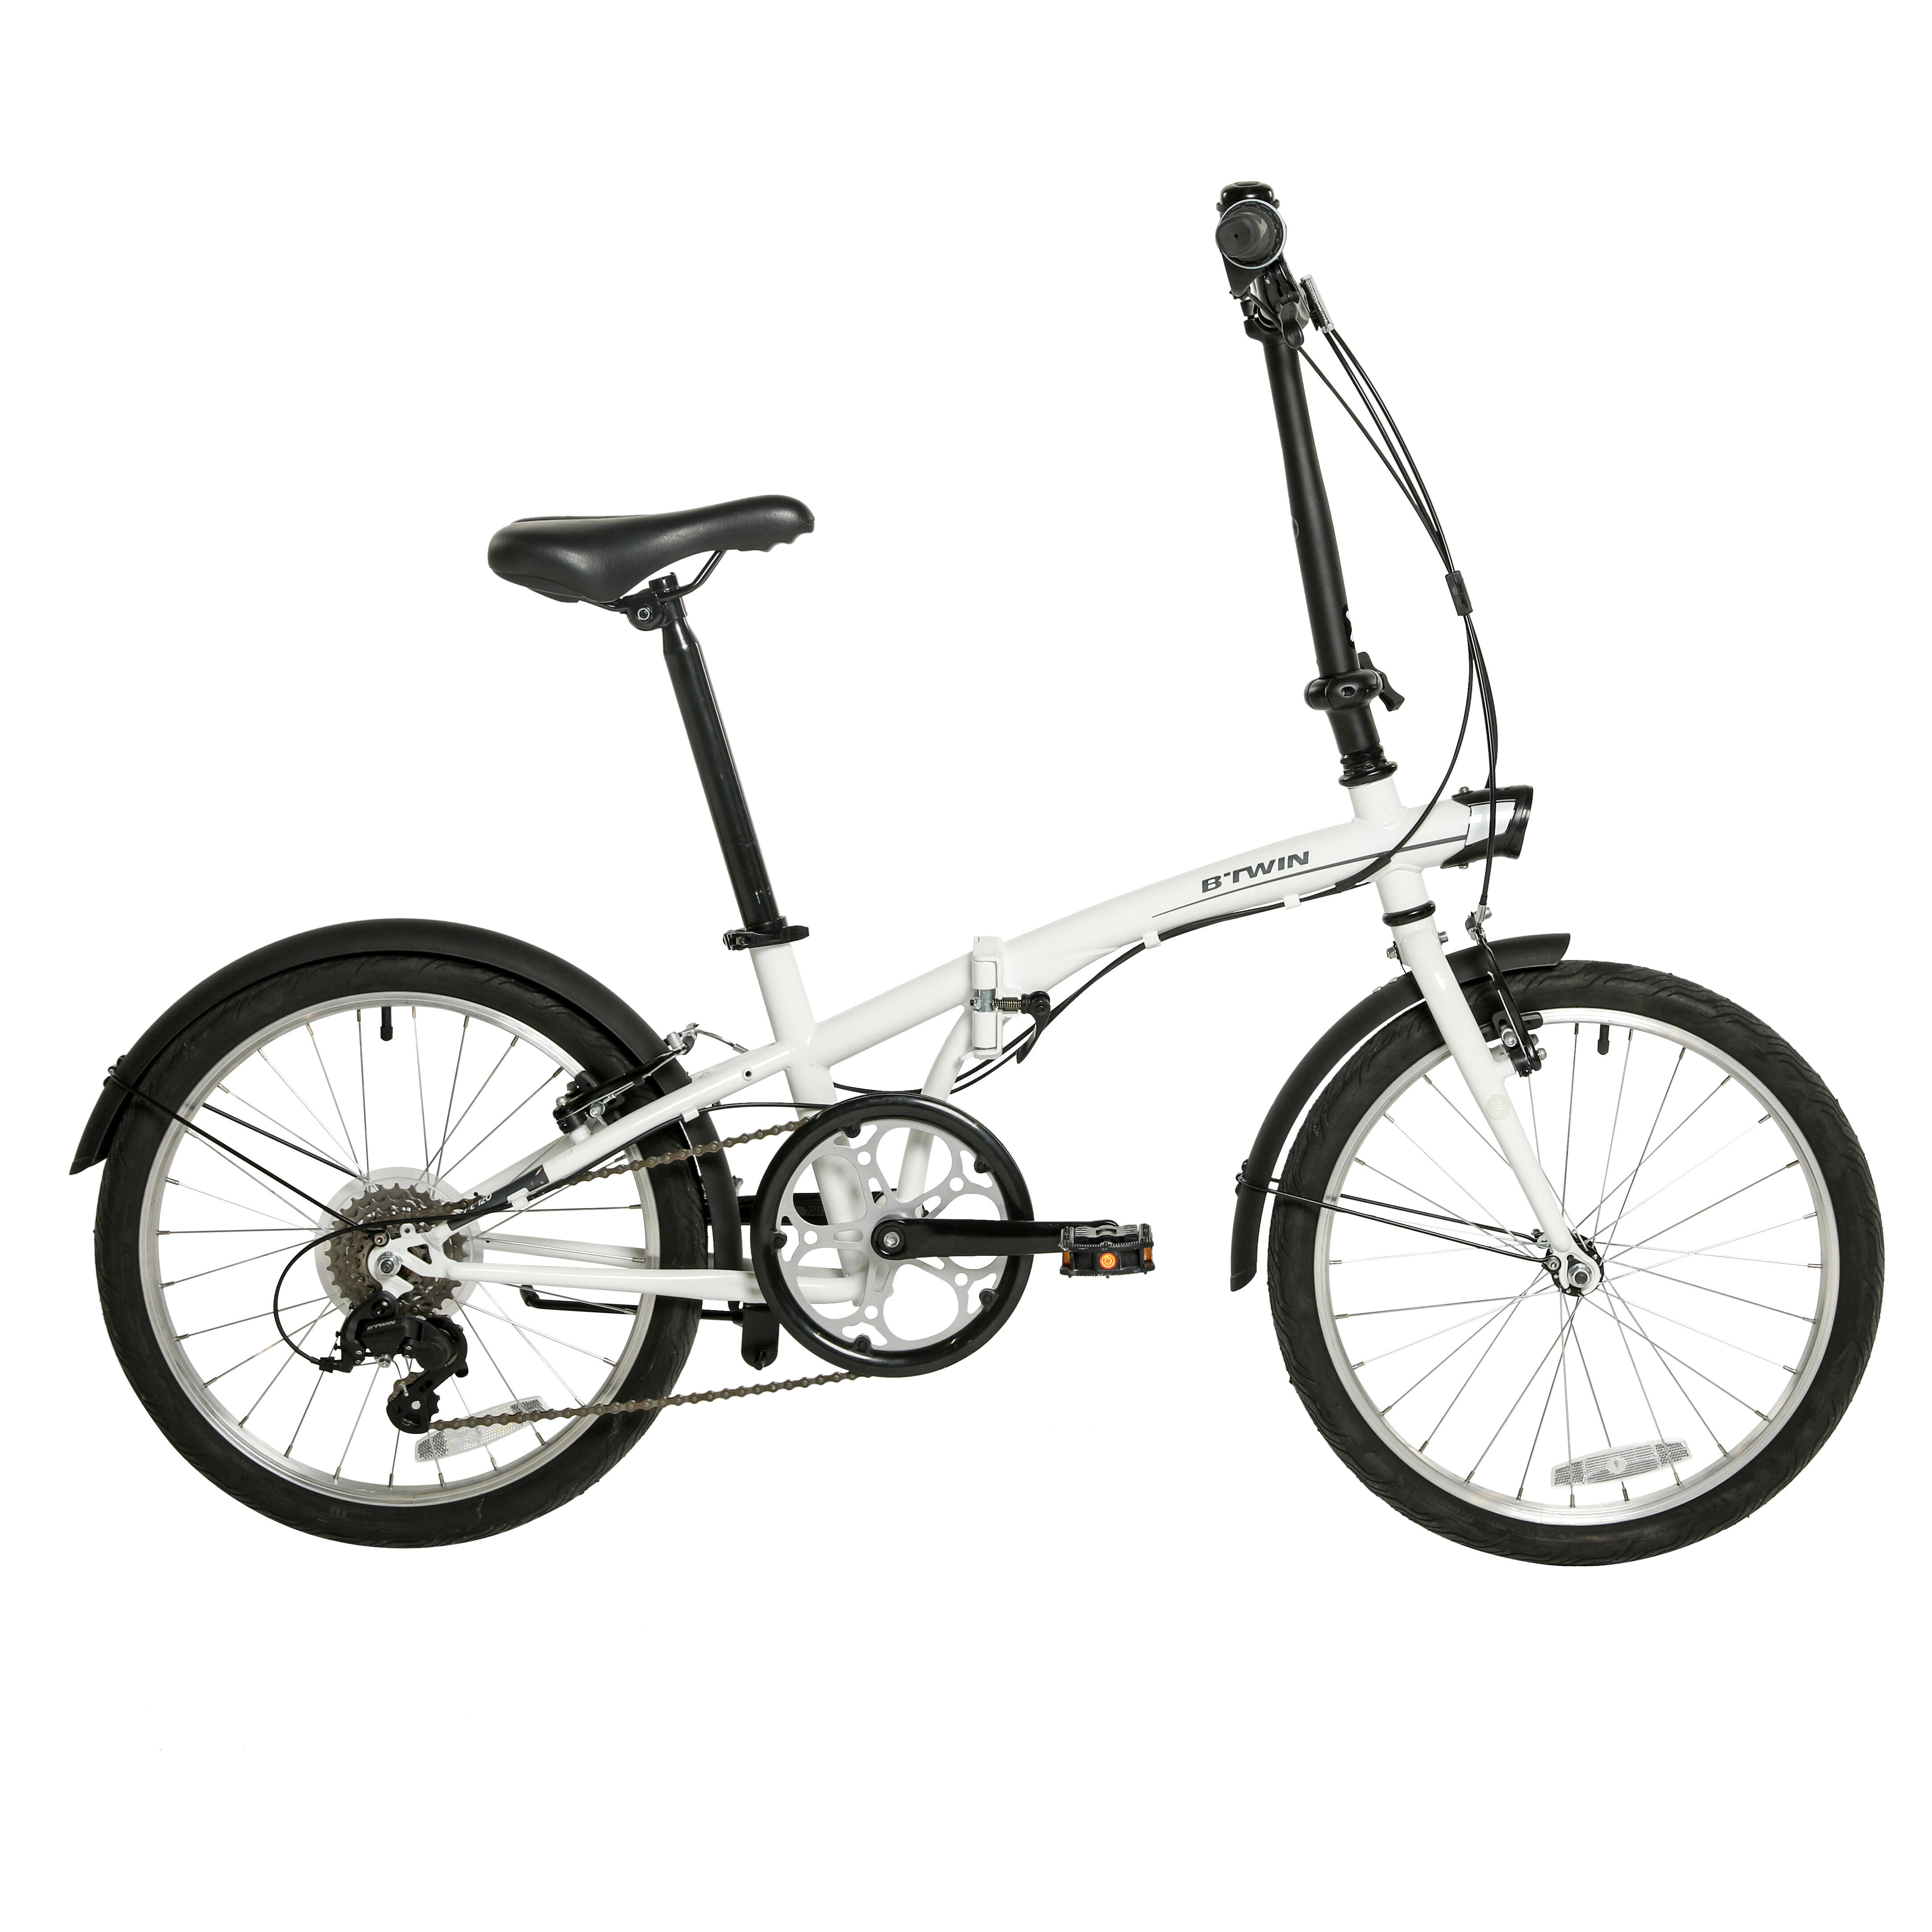 Folding bikes are smaller and easier to store at home or use for transportation